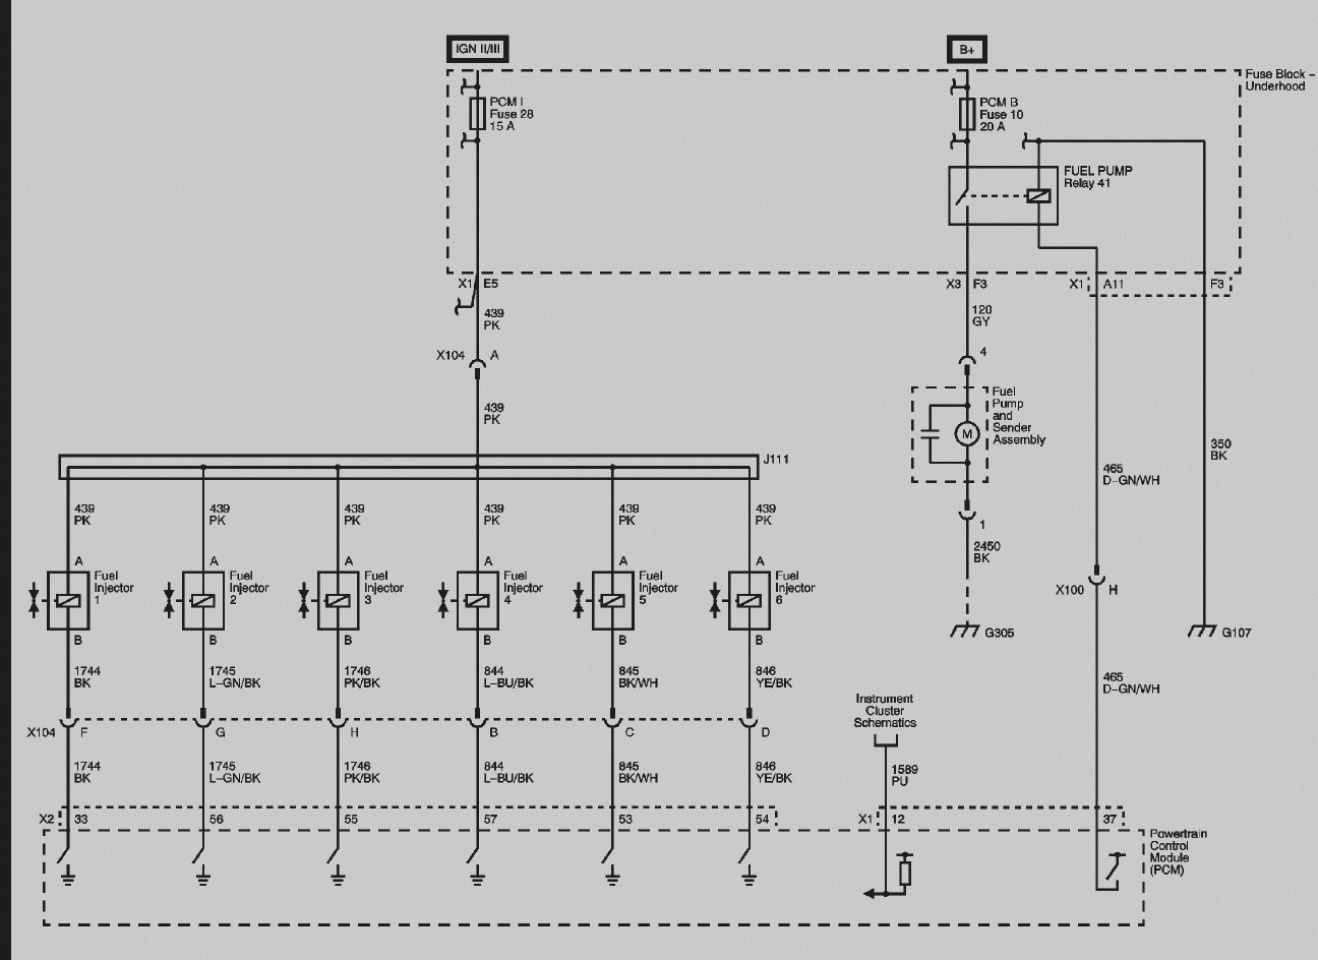 fuel injector wiring harness diagram electrical drawing wiring within fuel injector wiring diagram 9743 [ 1318 x 960 Pixel ]